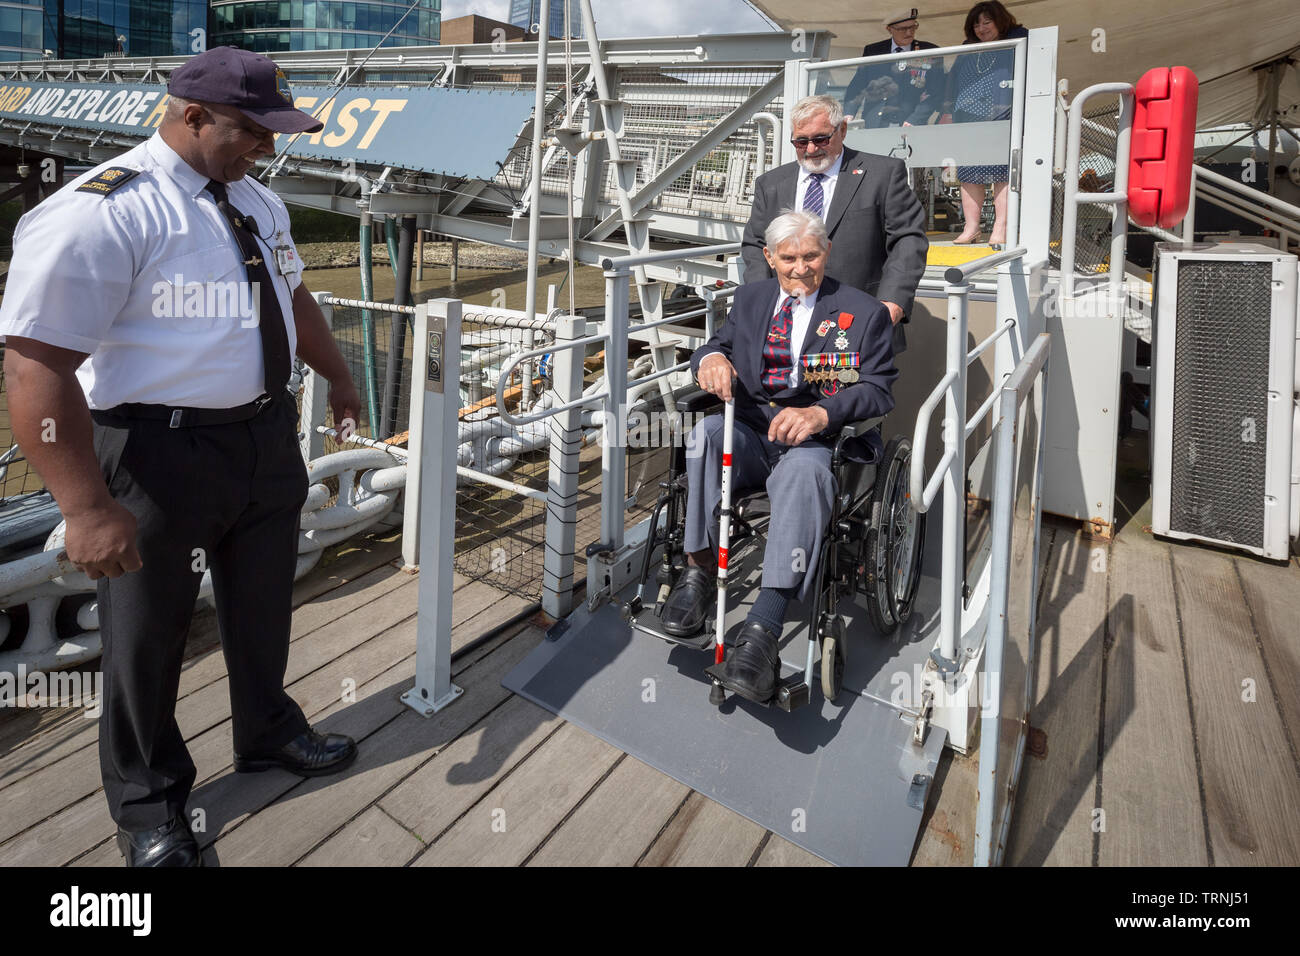 London, UK. 6th June 2019. Imperial War Museum marks 75th anniversary of the D-Day landing on board HMS Belfast. D-Day veterans (Arthur Barnes in chair) from Blind Veterans UK board the HMS Belfast, the ship that led the Allied fleet on D-Day. Credit: Guy Corbishley/Alamy Live News Stock Photo